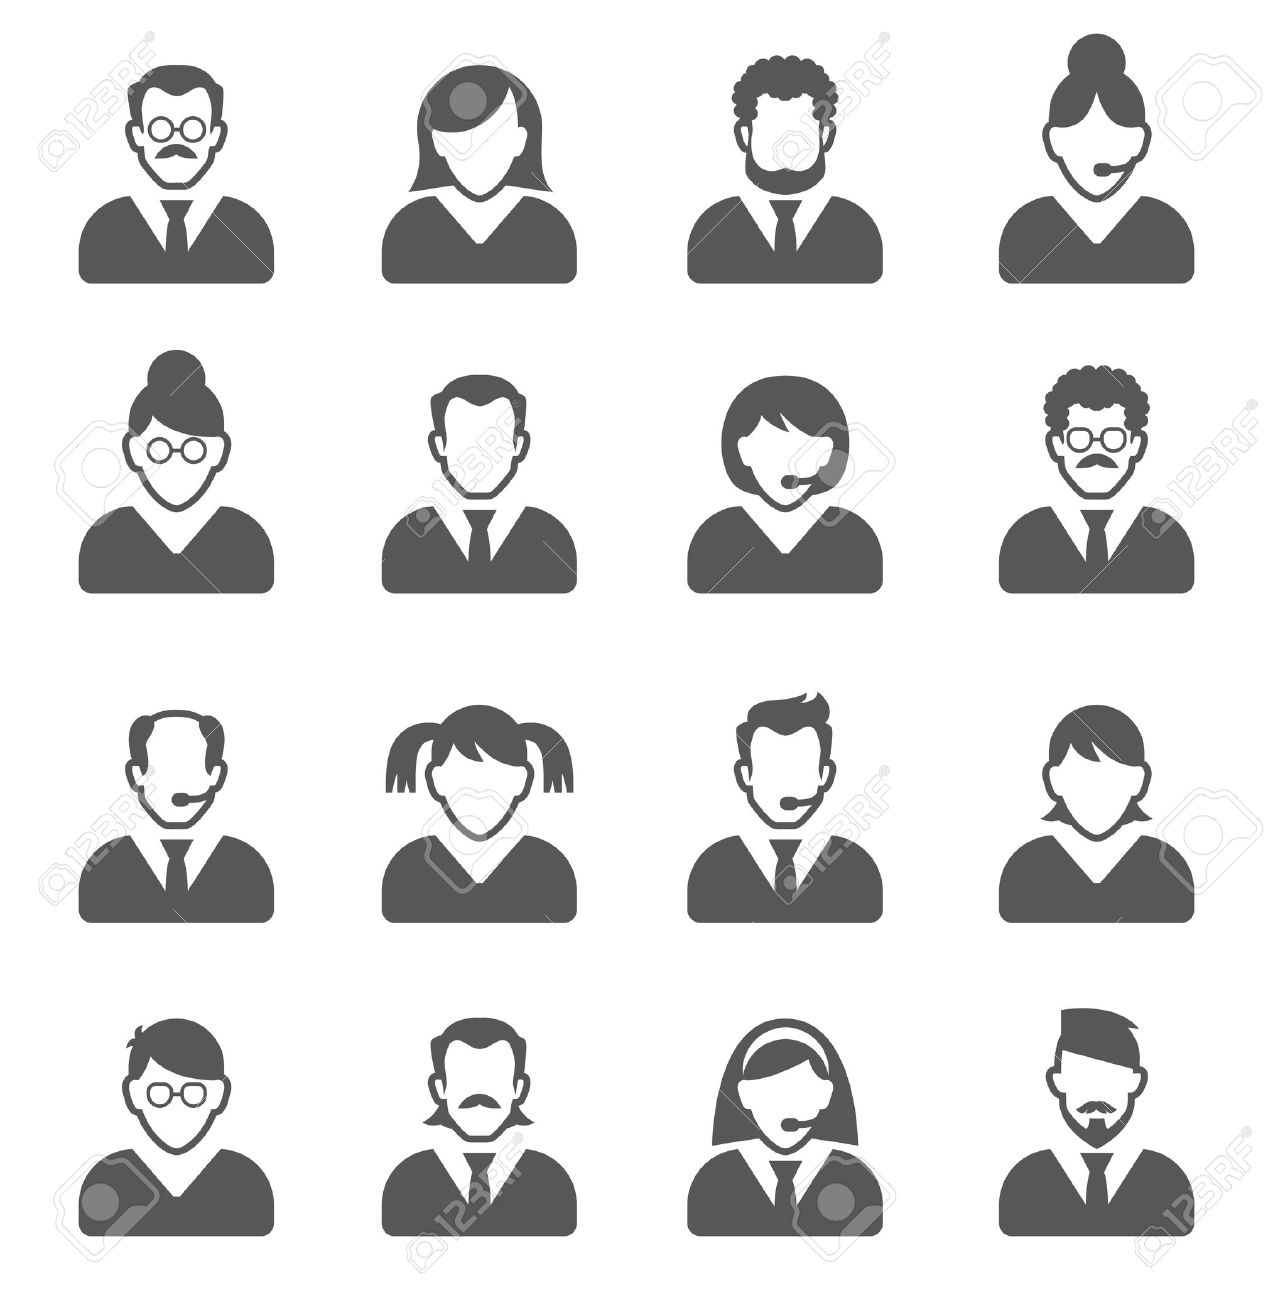 User Icons and People Icons with White Background - 39636143